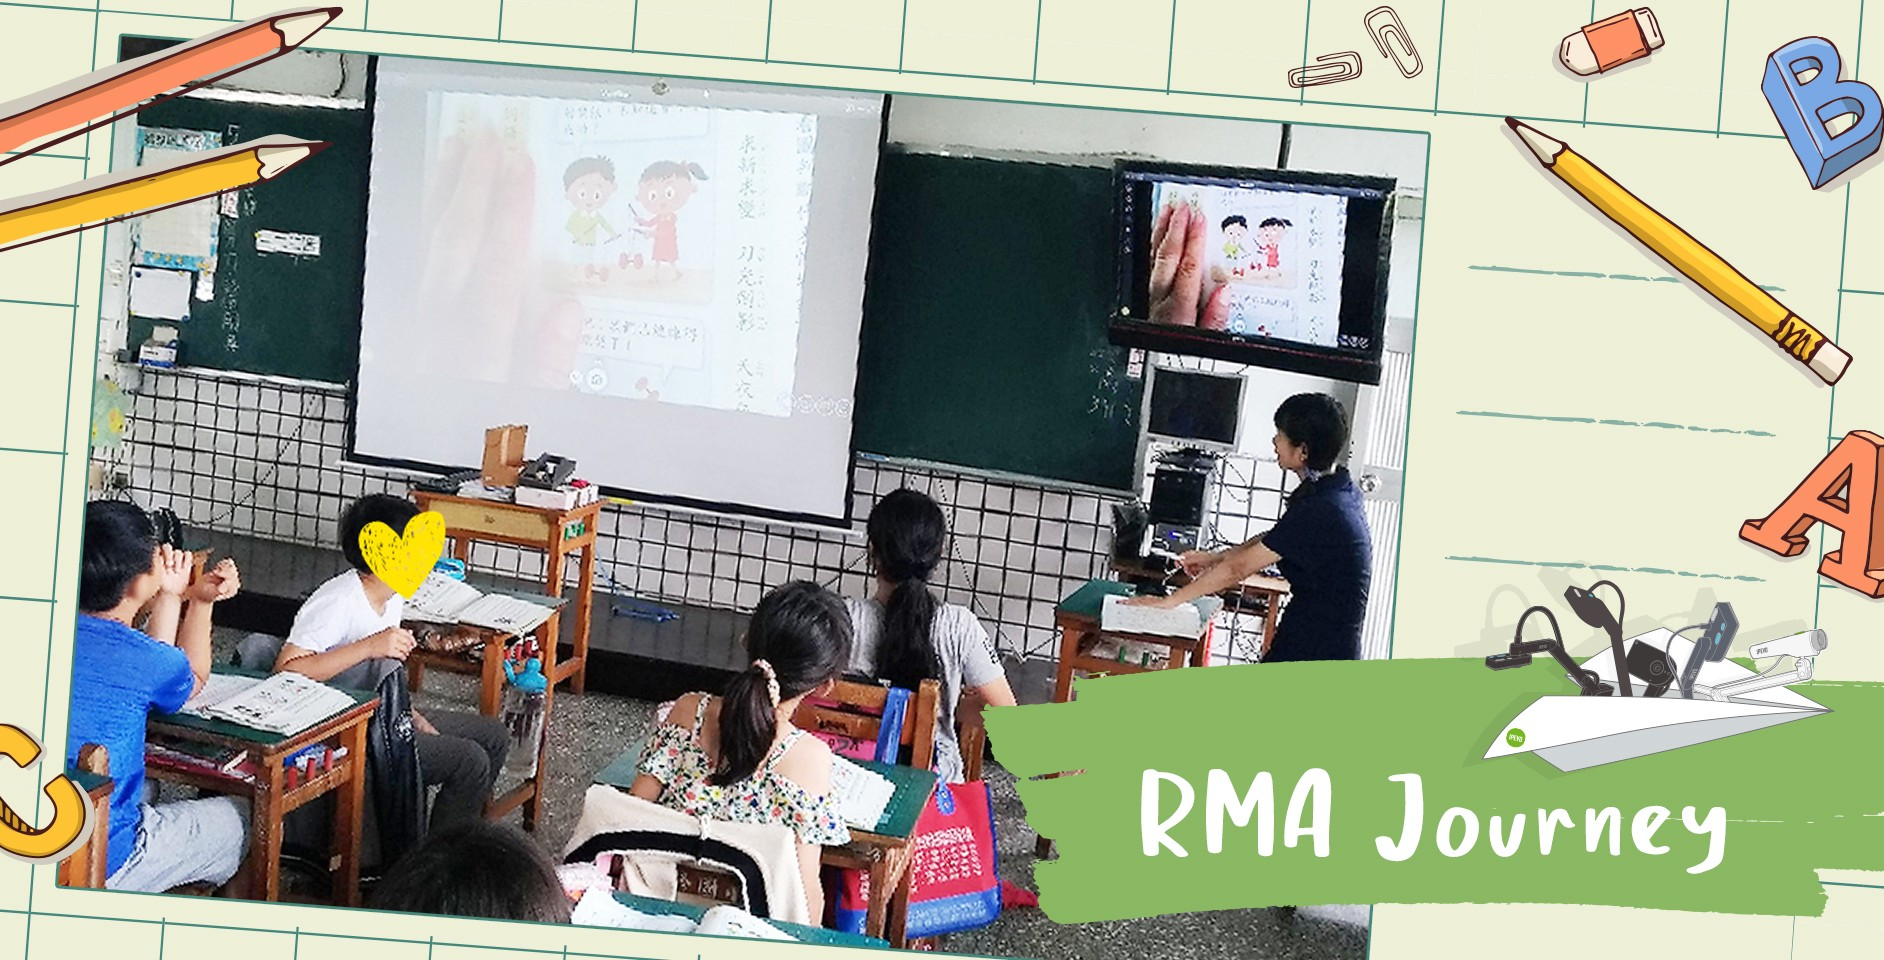 IPEVO's RMA Journey Part Four: Utilizing Document Cameras for Teaching Languages